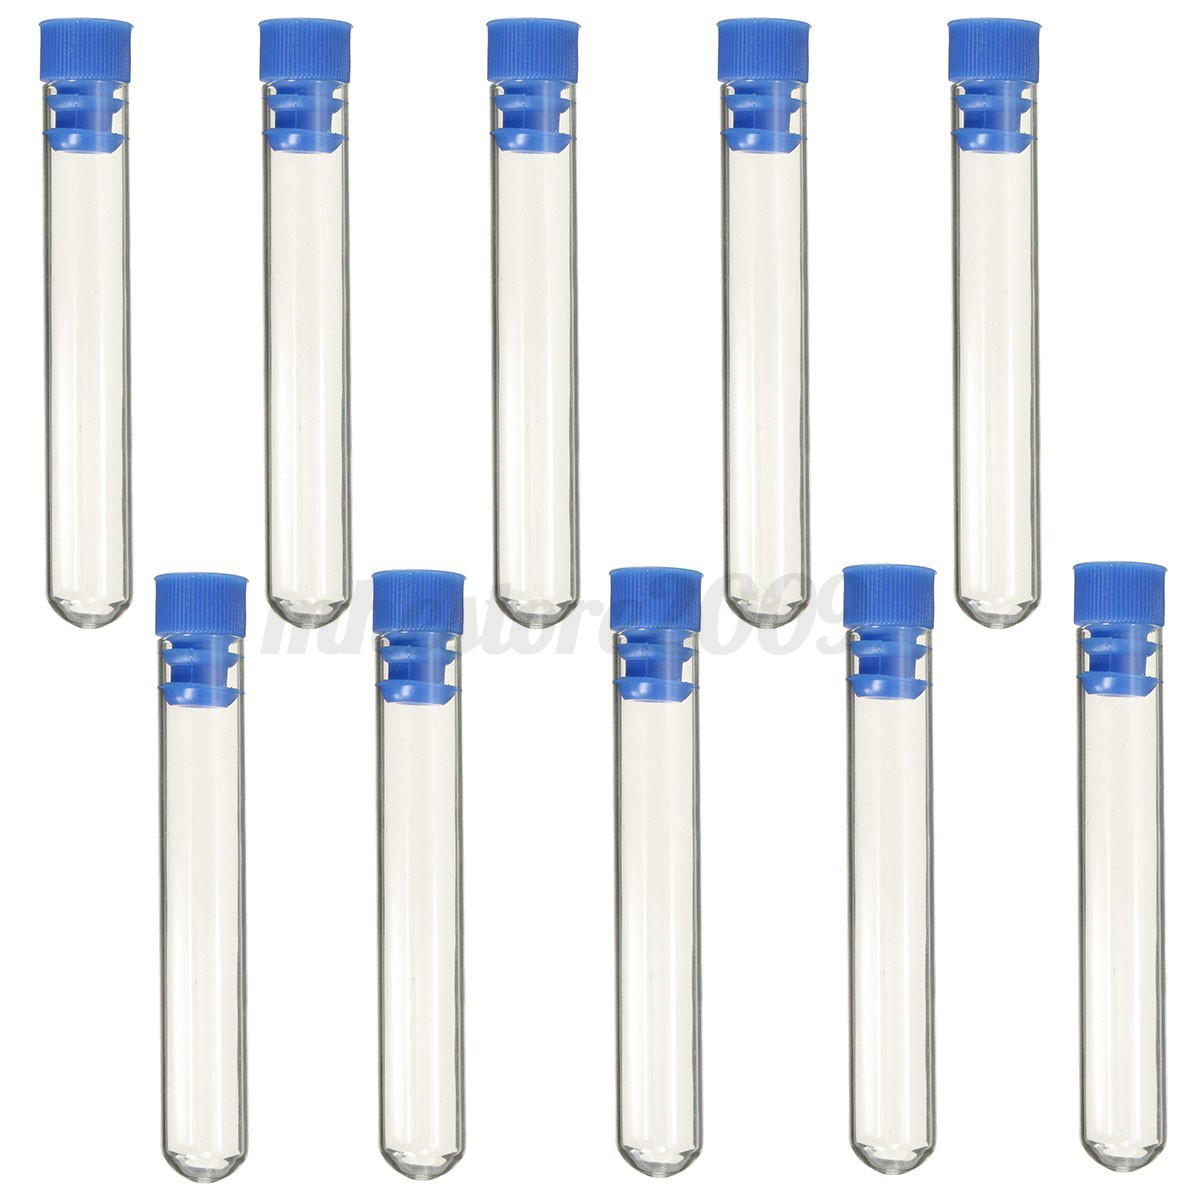 10pcs 12mm X 75mm Borosilicate Glass Test Tubes Rimless Pyrex With Push Caps Lab